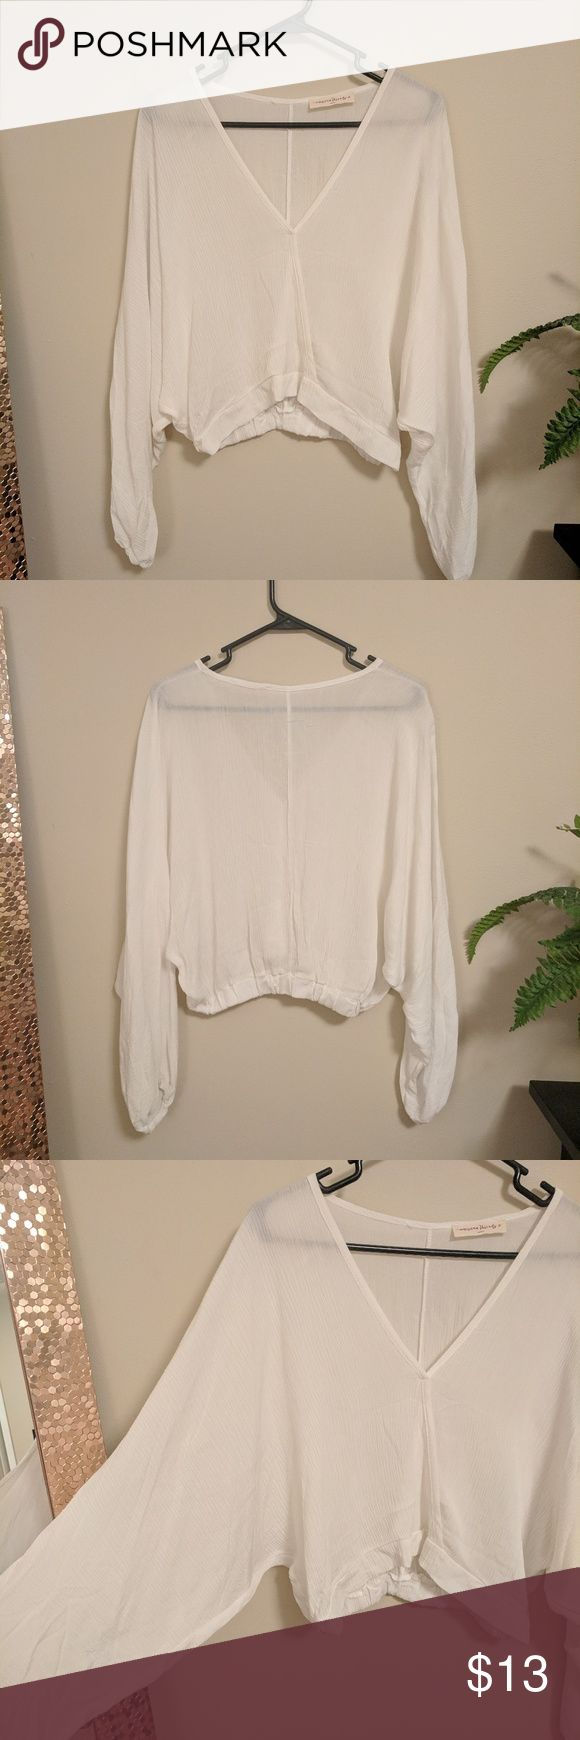 White Batwing Sleeve Crop Top White Batwing Sleeve Crop Top in size medium. New condition!  Forever 21, H&M, Charlotte Russe, Topshop, Wet Seal, American Eagle, Boohoo, ASOS, Payapa, Rue 21, Victoria's Secret, Amuse Society, Knot Sisters, Planet Blue, Show Me Your Mumu Tops